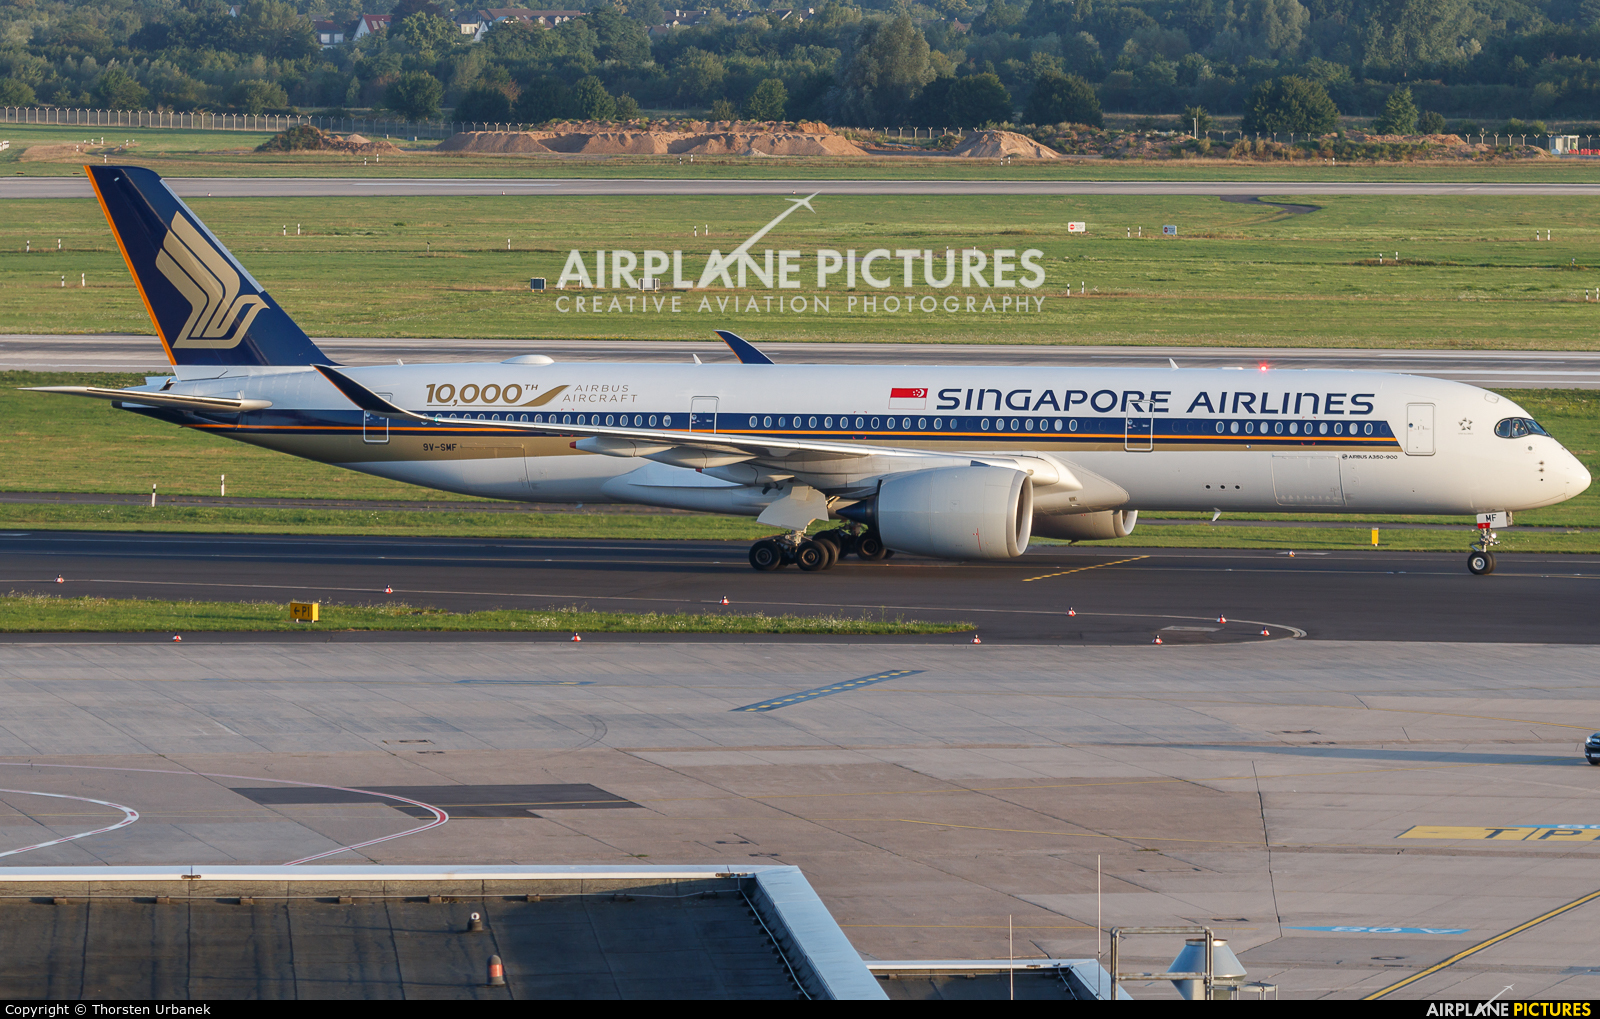 Singapore Airlines 9V-SMF aircraft at Düsseldorf